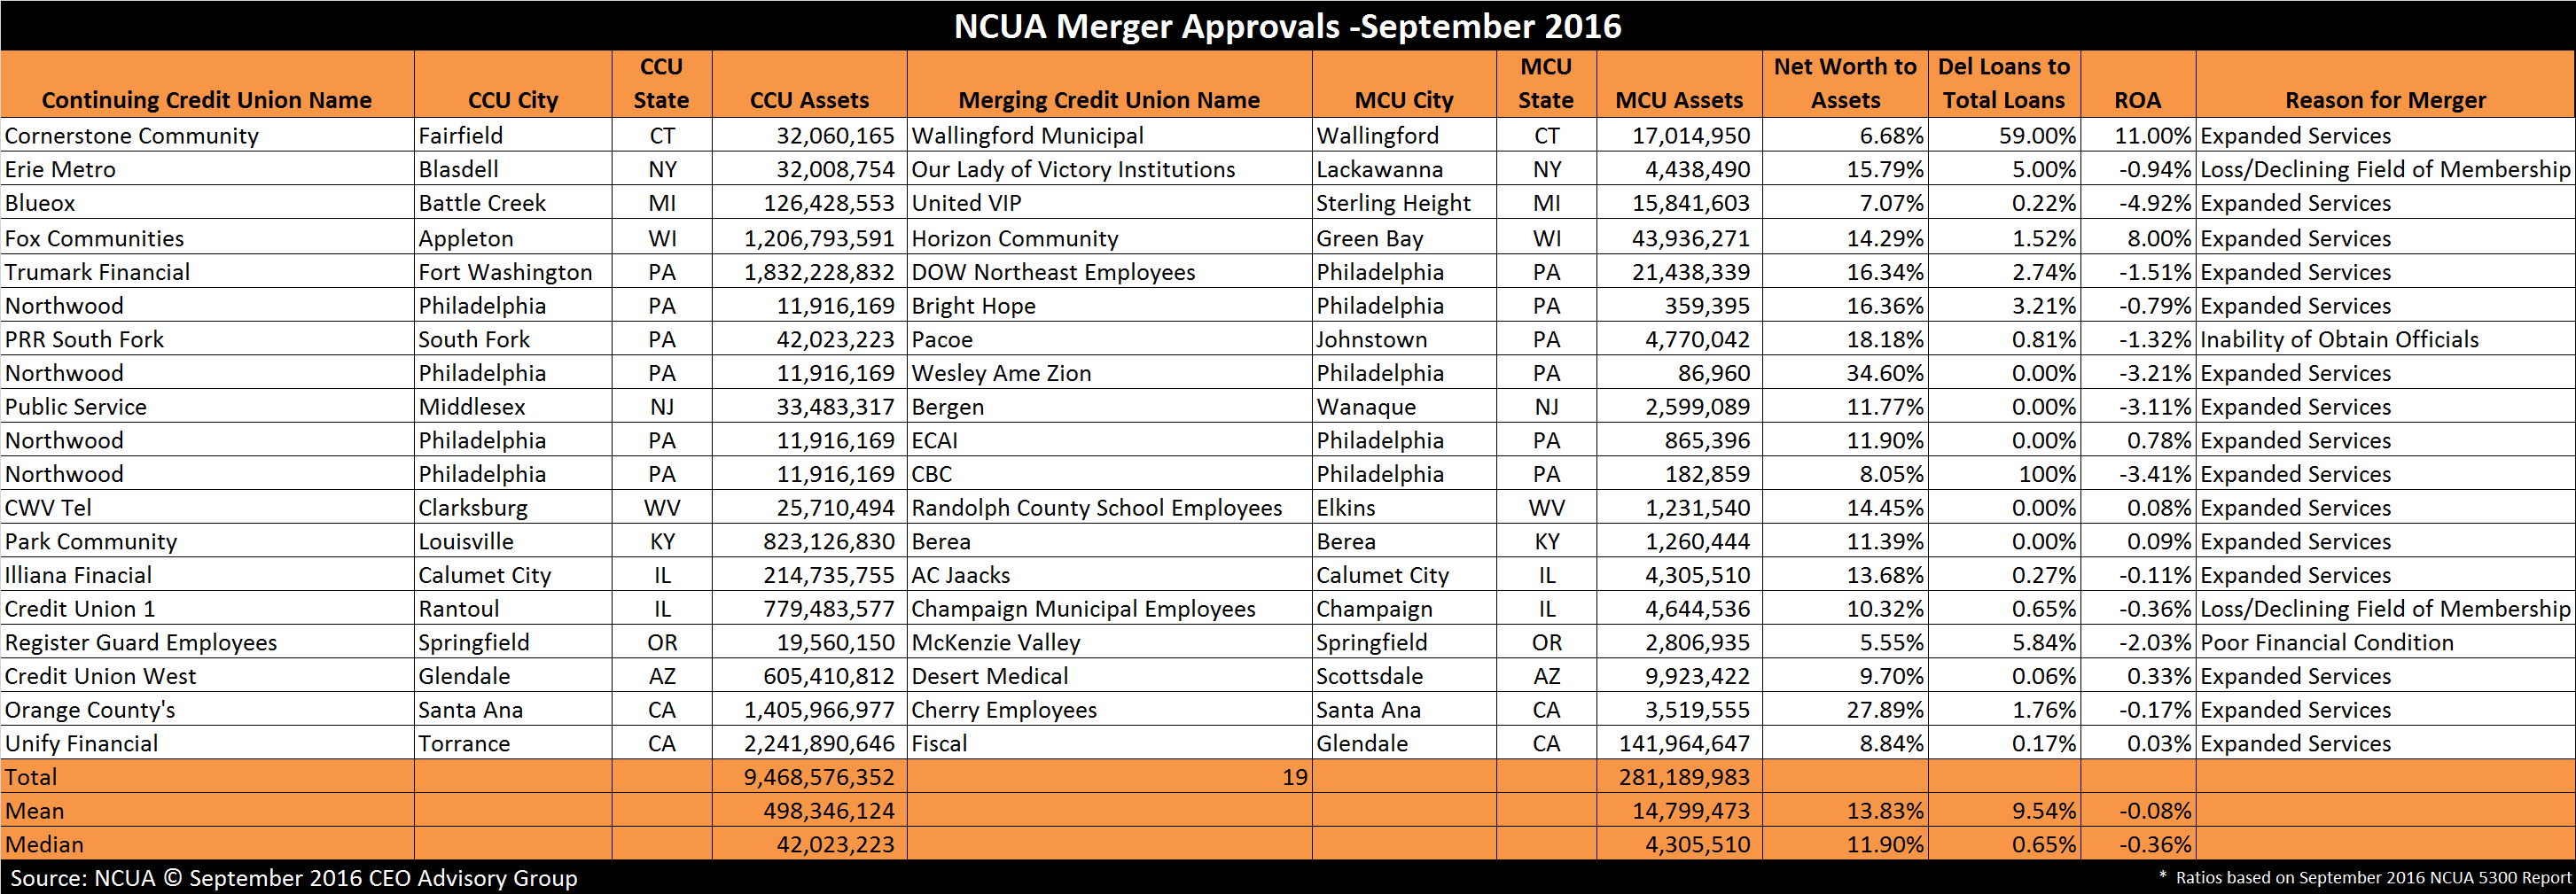 NCUA Merger Approvals - September 2016